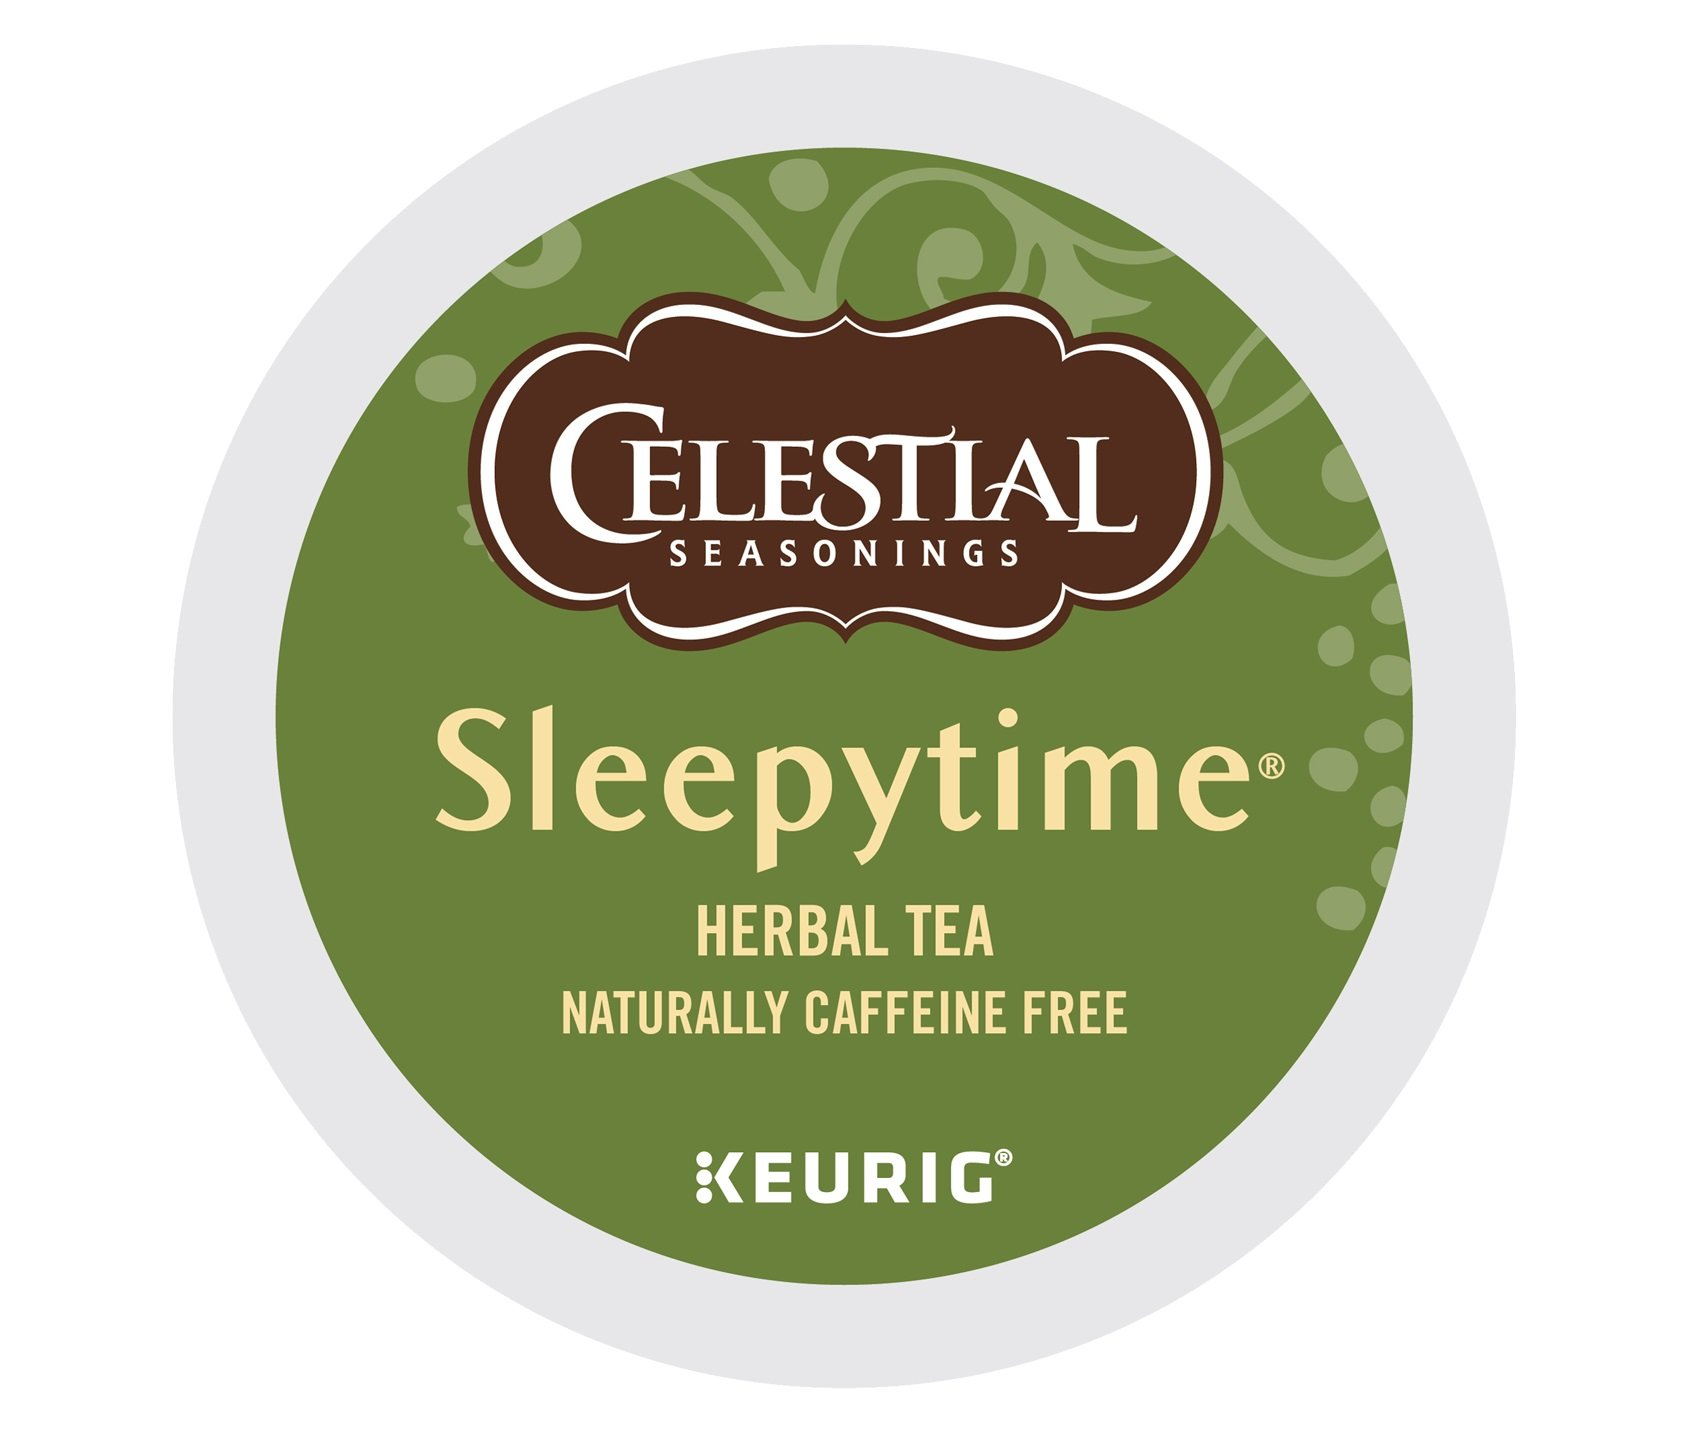 Celestial Seasonings Sleepytime Herbal Tea, Keurig K-Cups, 12 Count (Pack of 6) by Celestial Seasonings